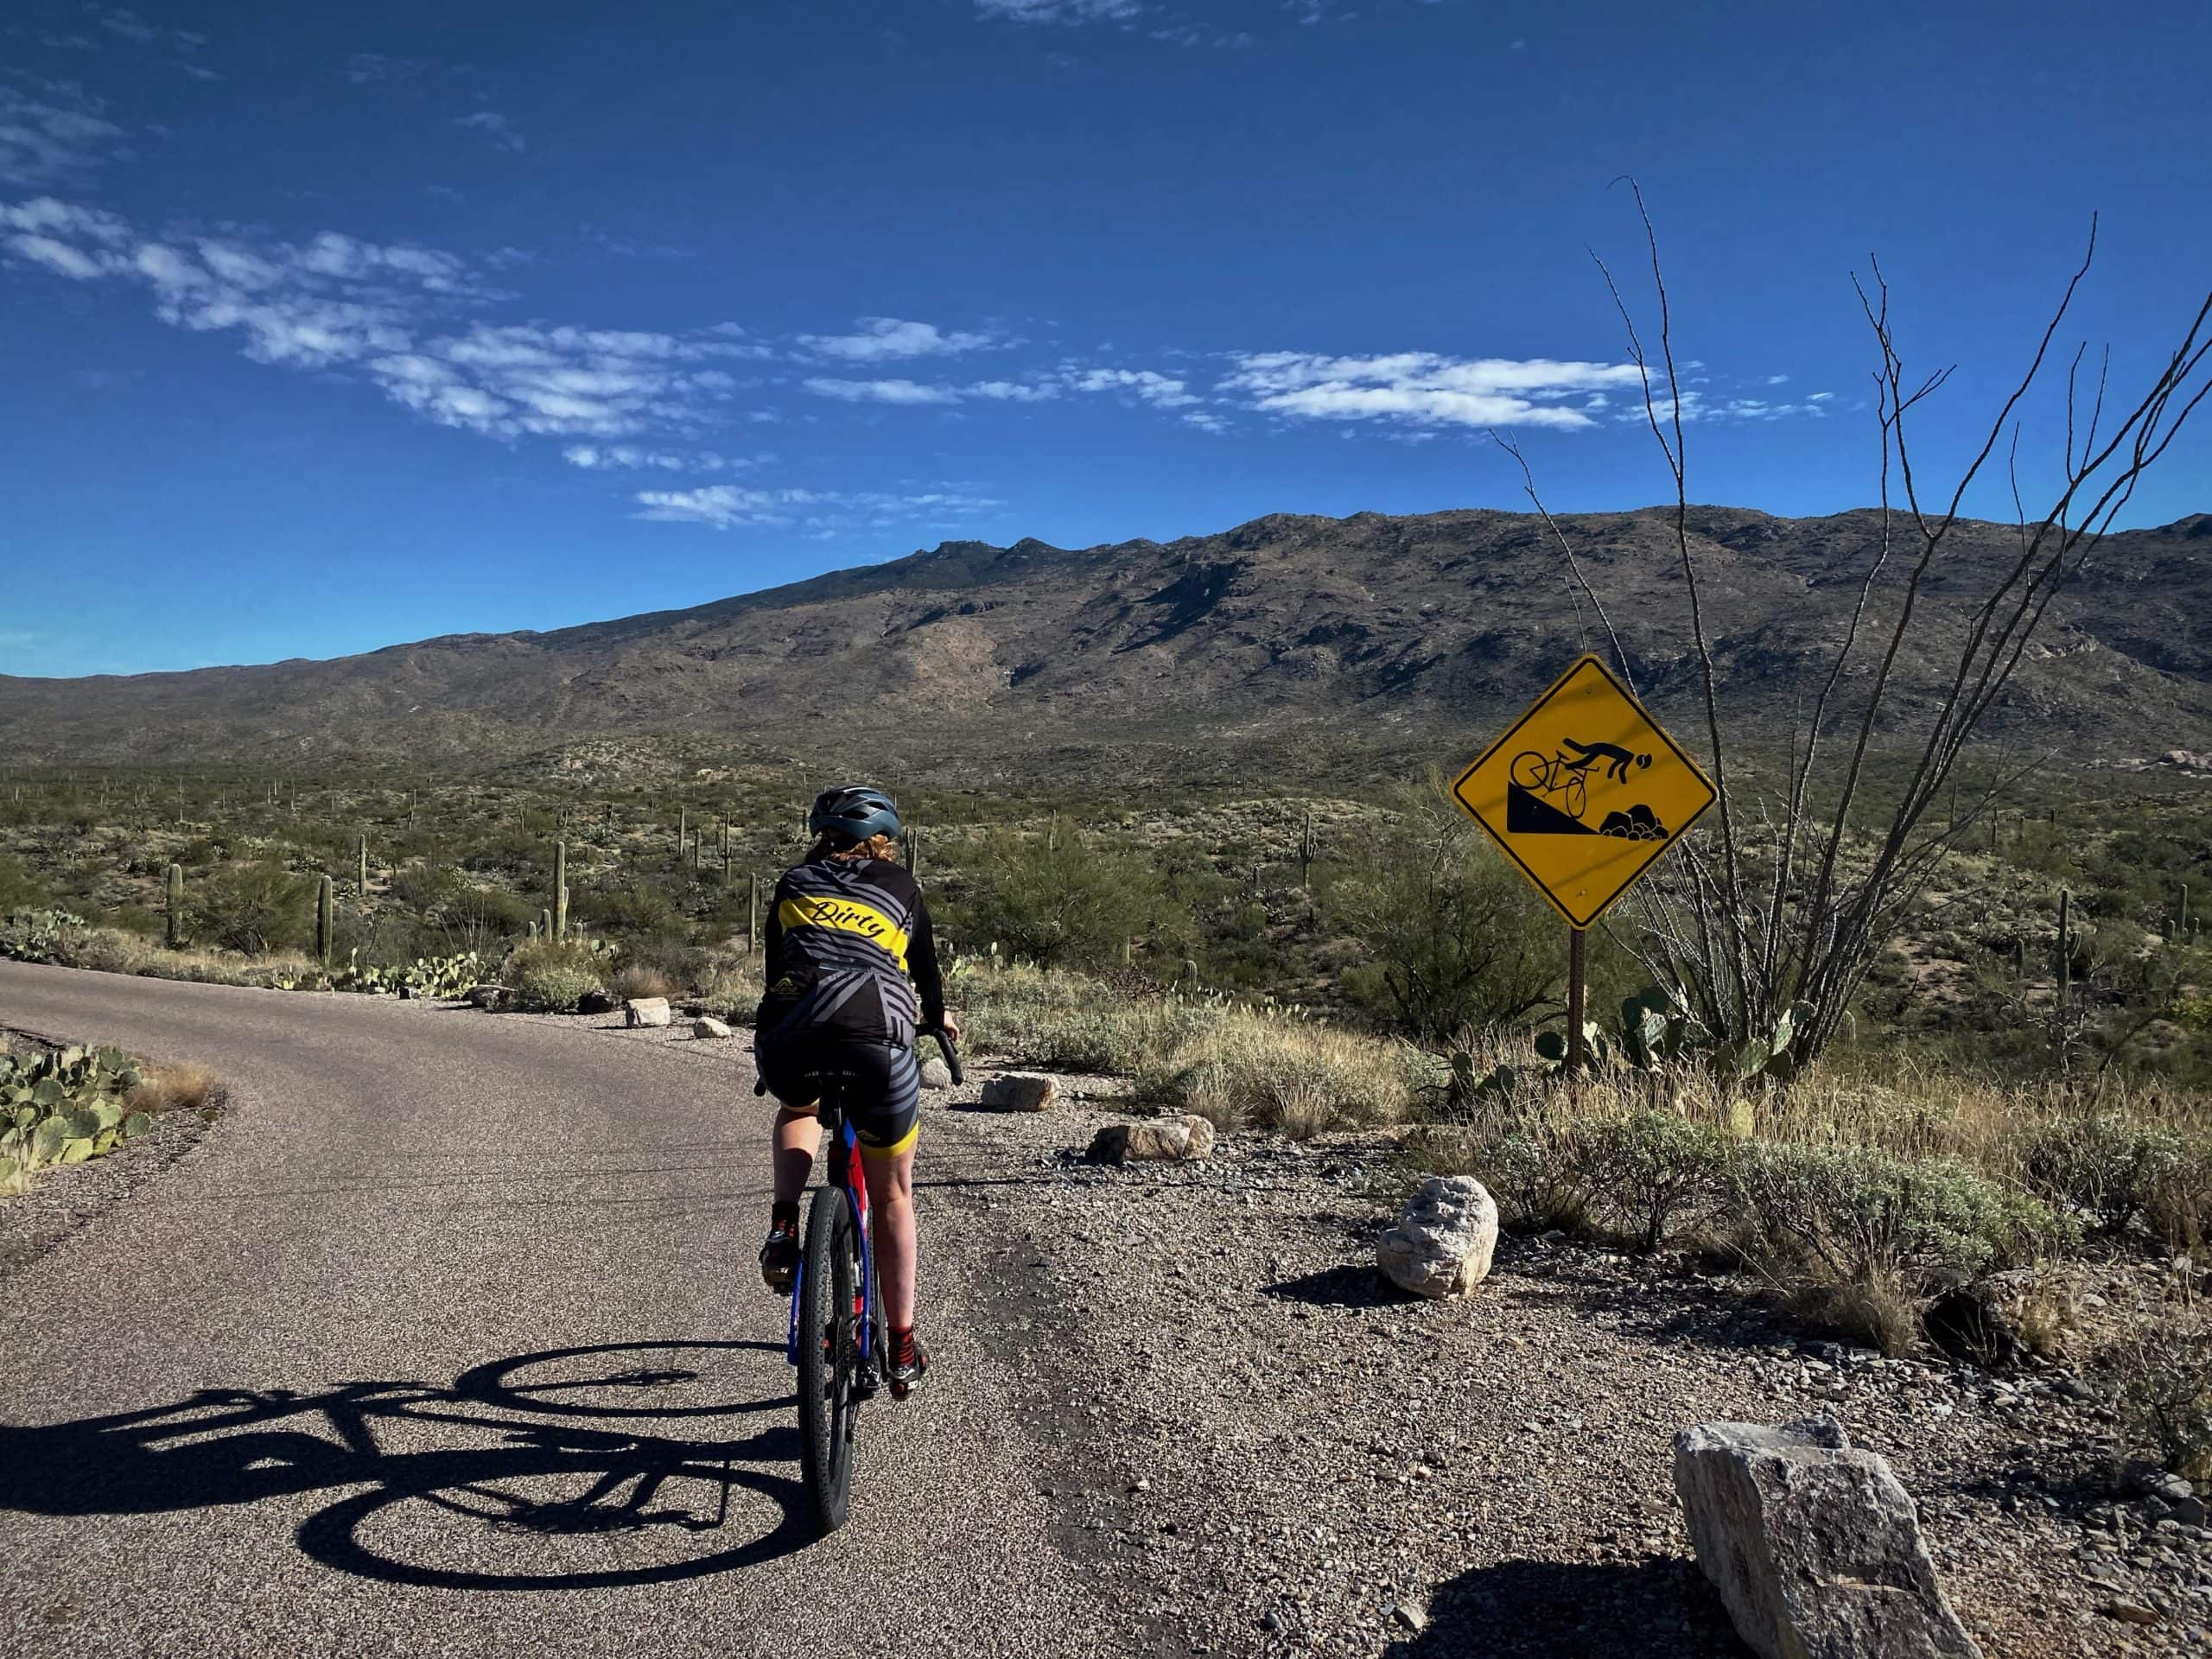 Cyclist on gravel bike on the rollercoaster section of the Cactus Forest road in Saguaro National Park (east).